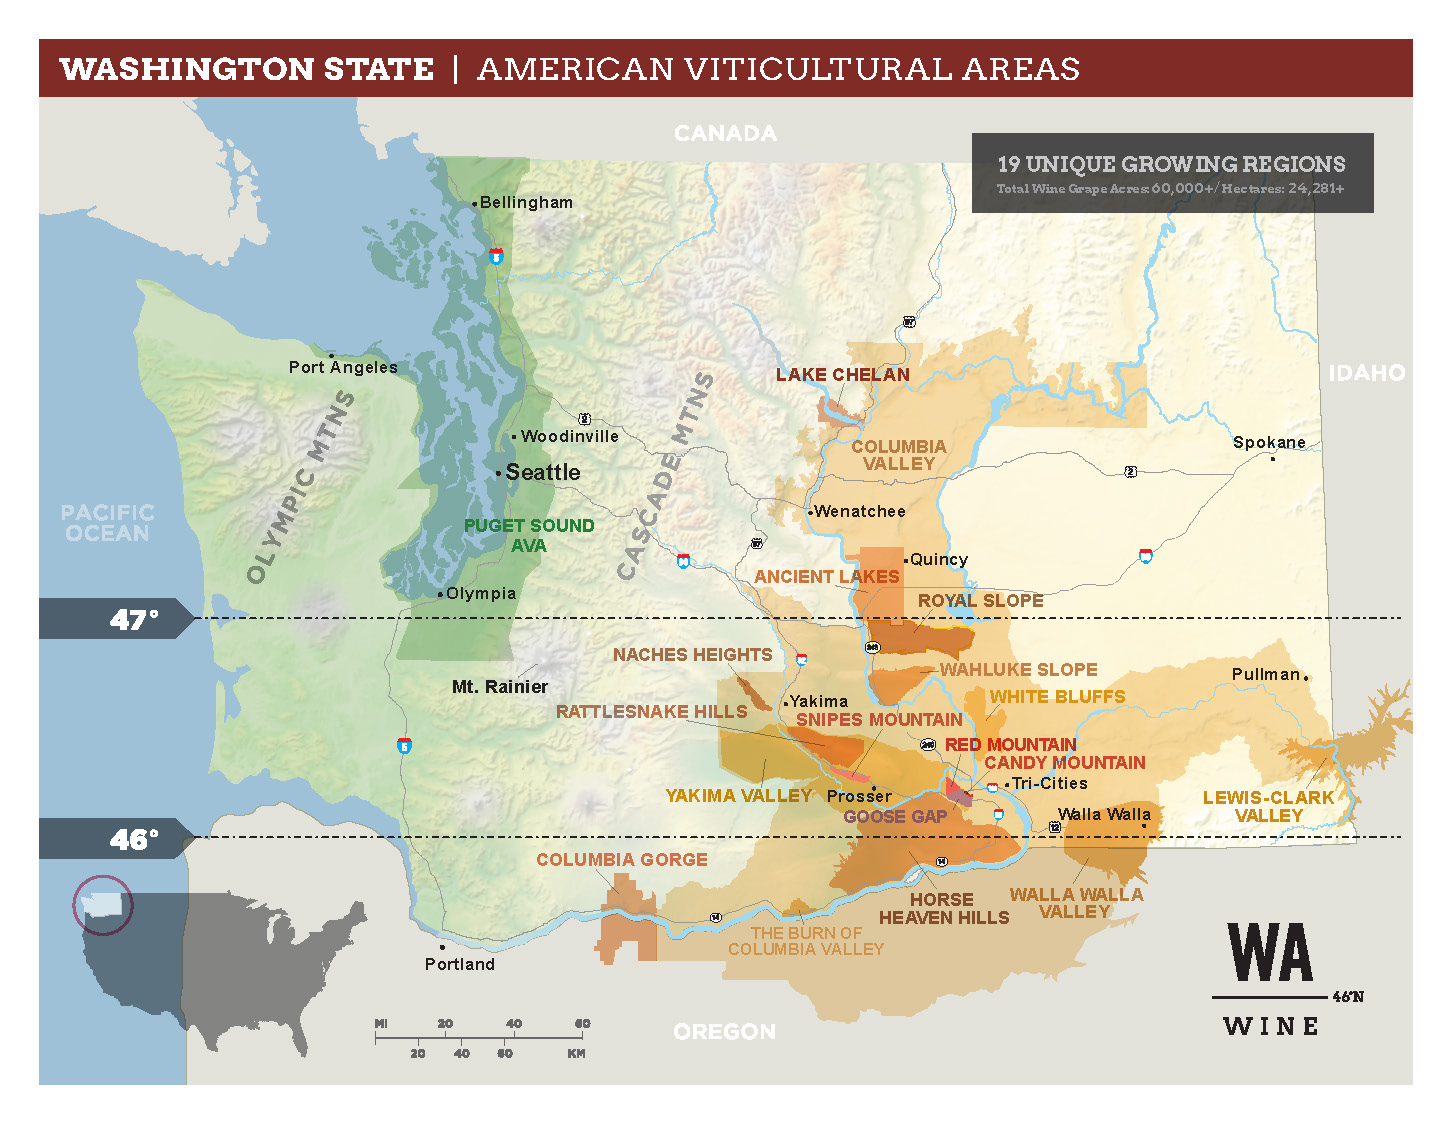 map of the State of Washington with the 19 American Viticultural Areas (AVAs) in oranges and green, with the names of the AVAs overlaid.